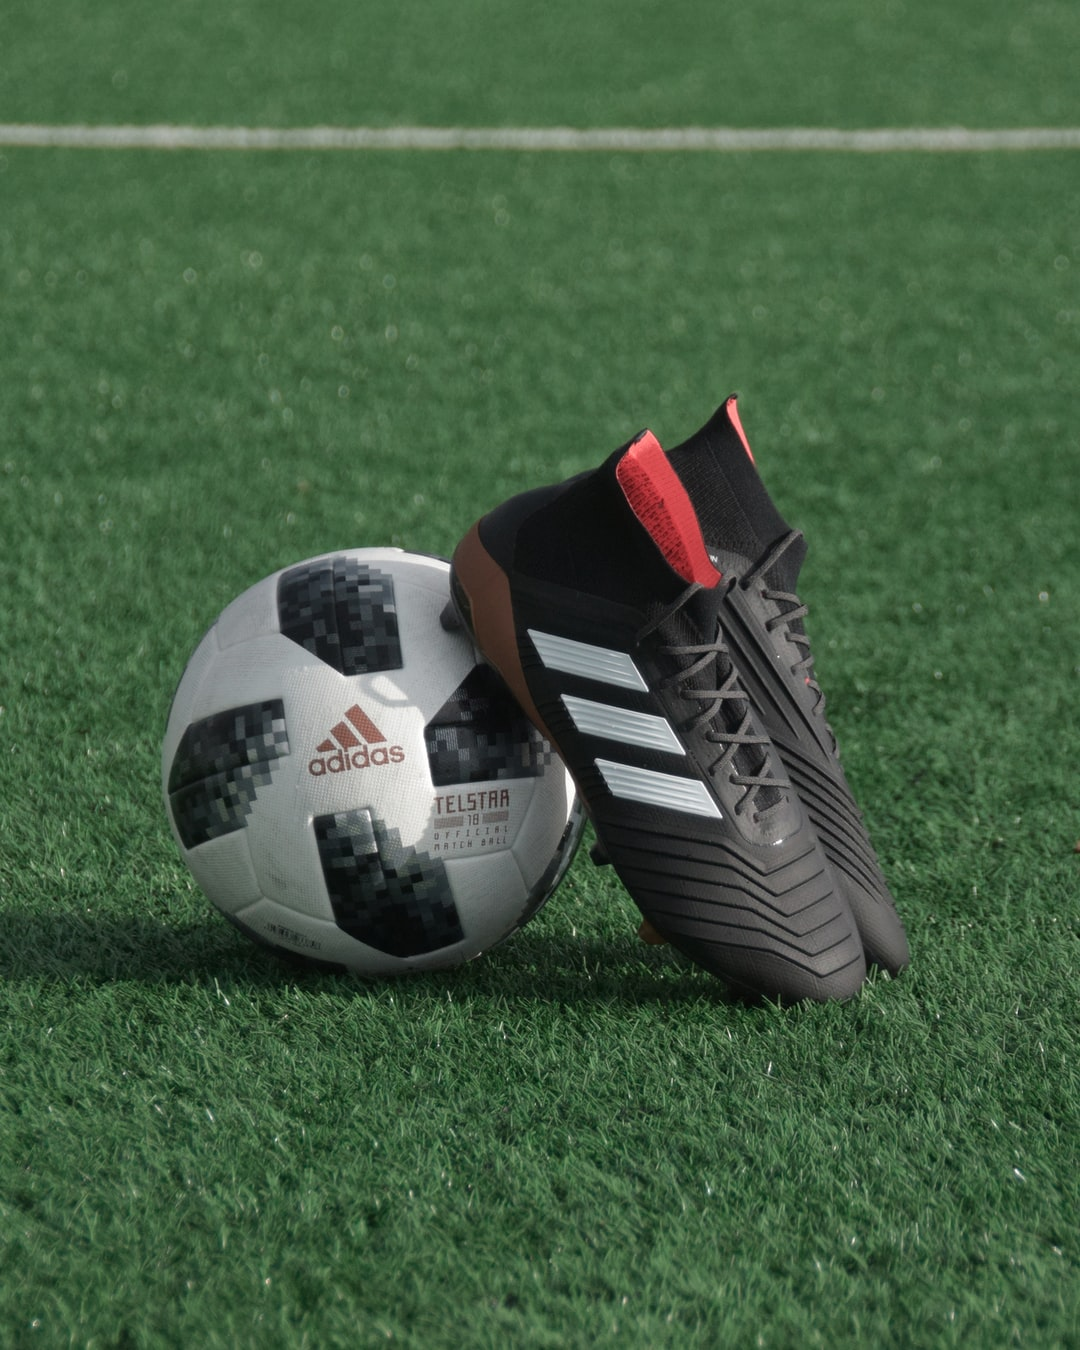 Black Adidas Cleats Lean On White And Black Adidas Soccer